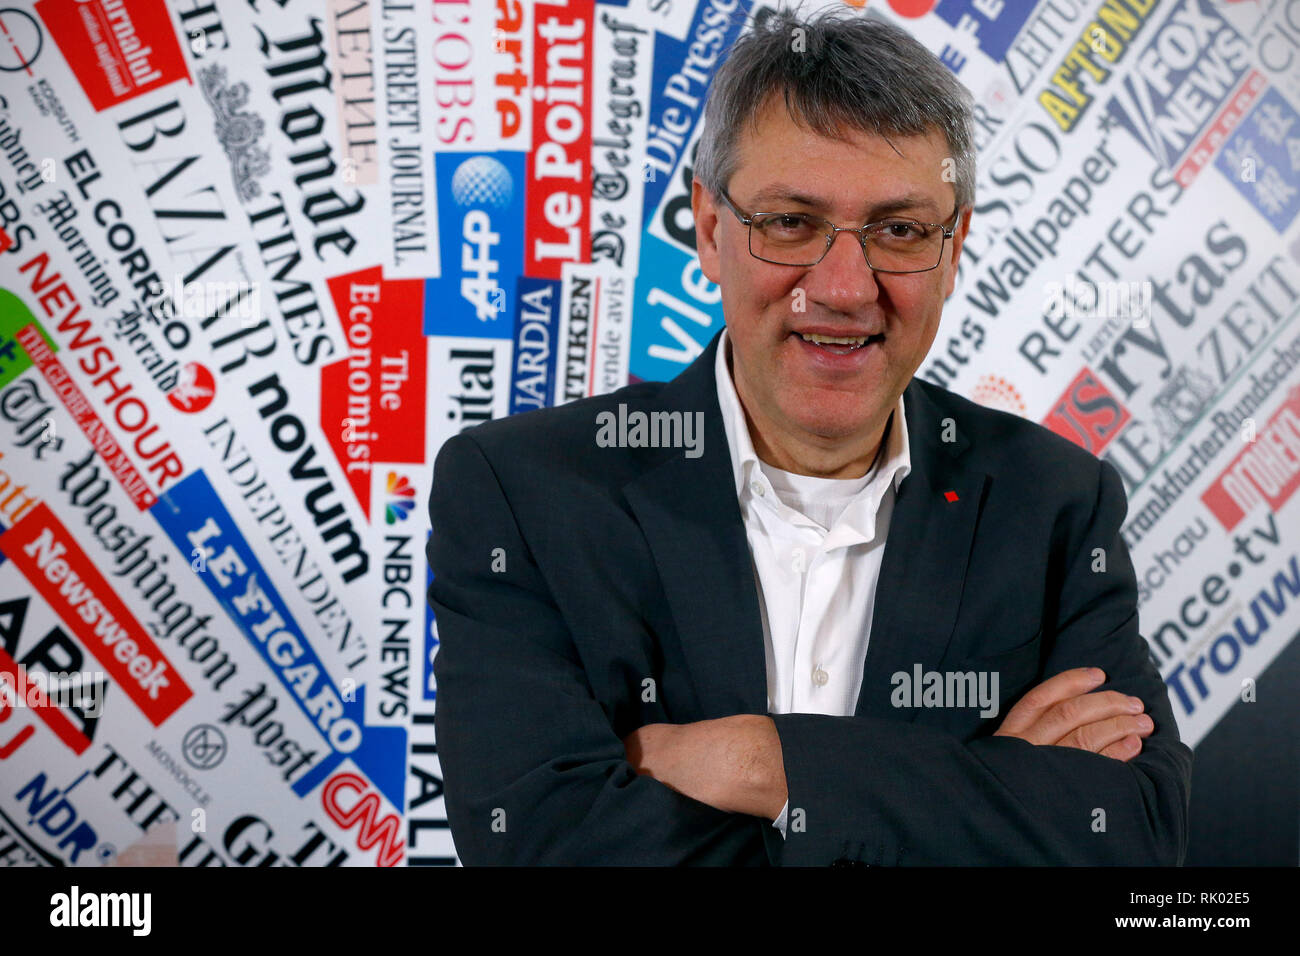 Arte Journal Avis Cgil Susanna Camusso Stock Photos Cgil Susanna Camusso Stock